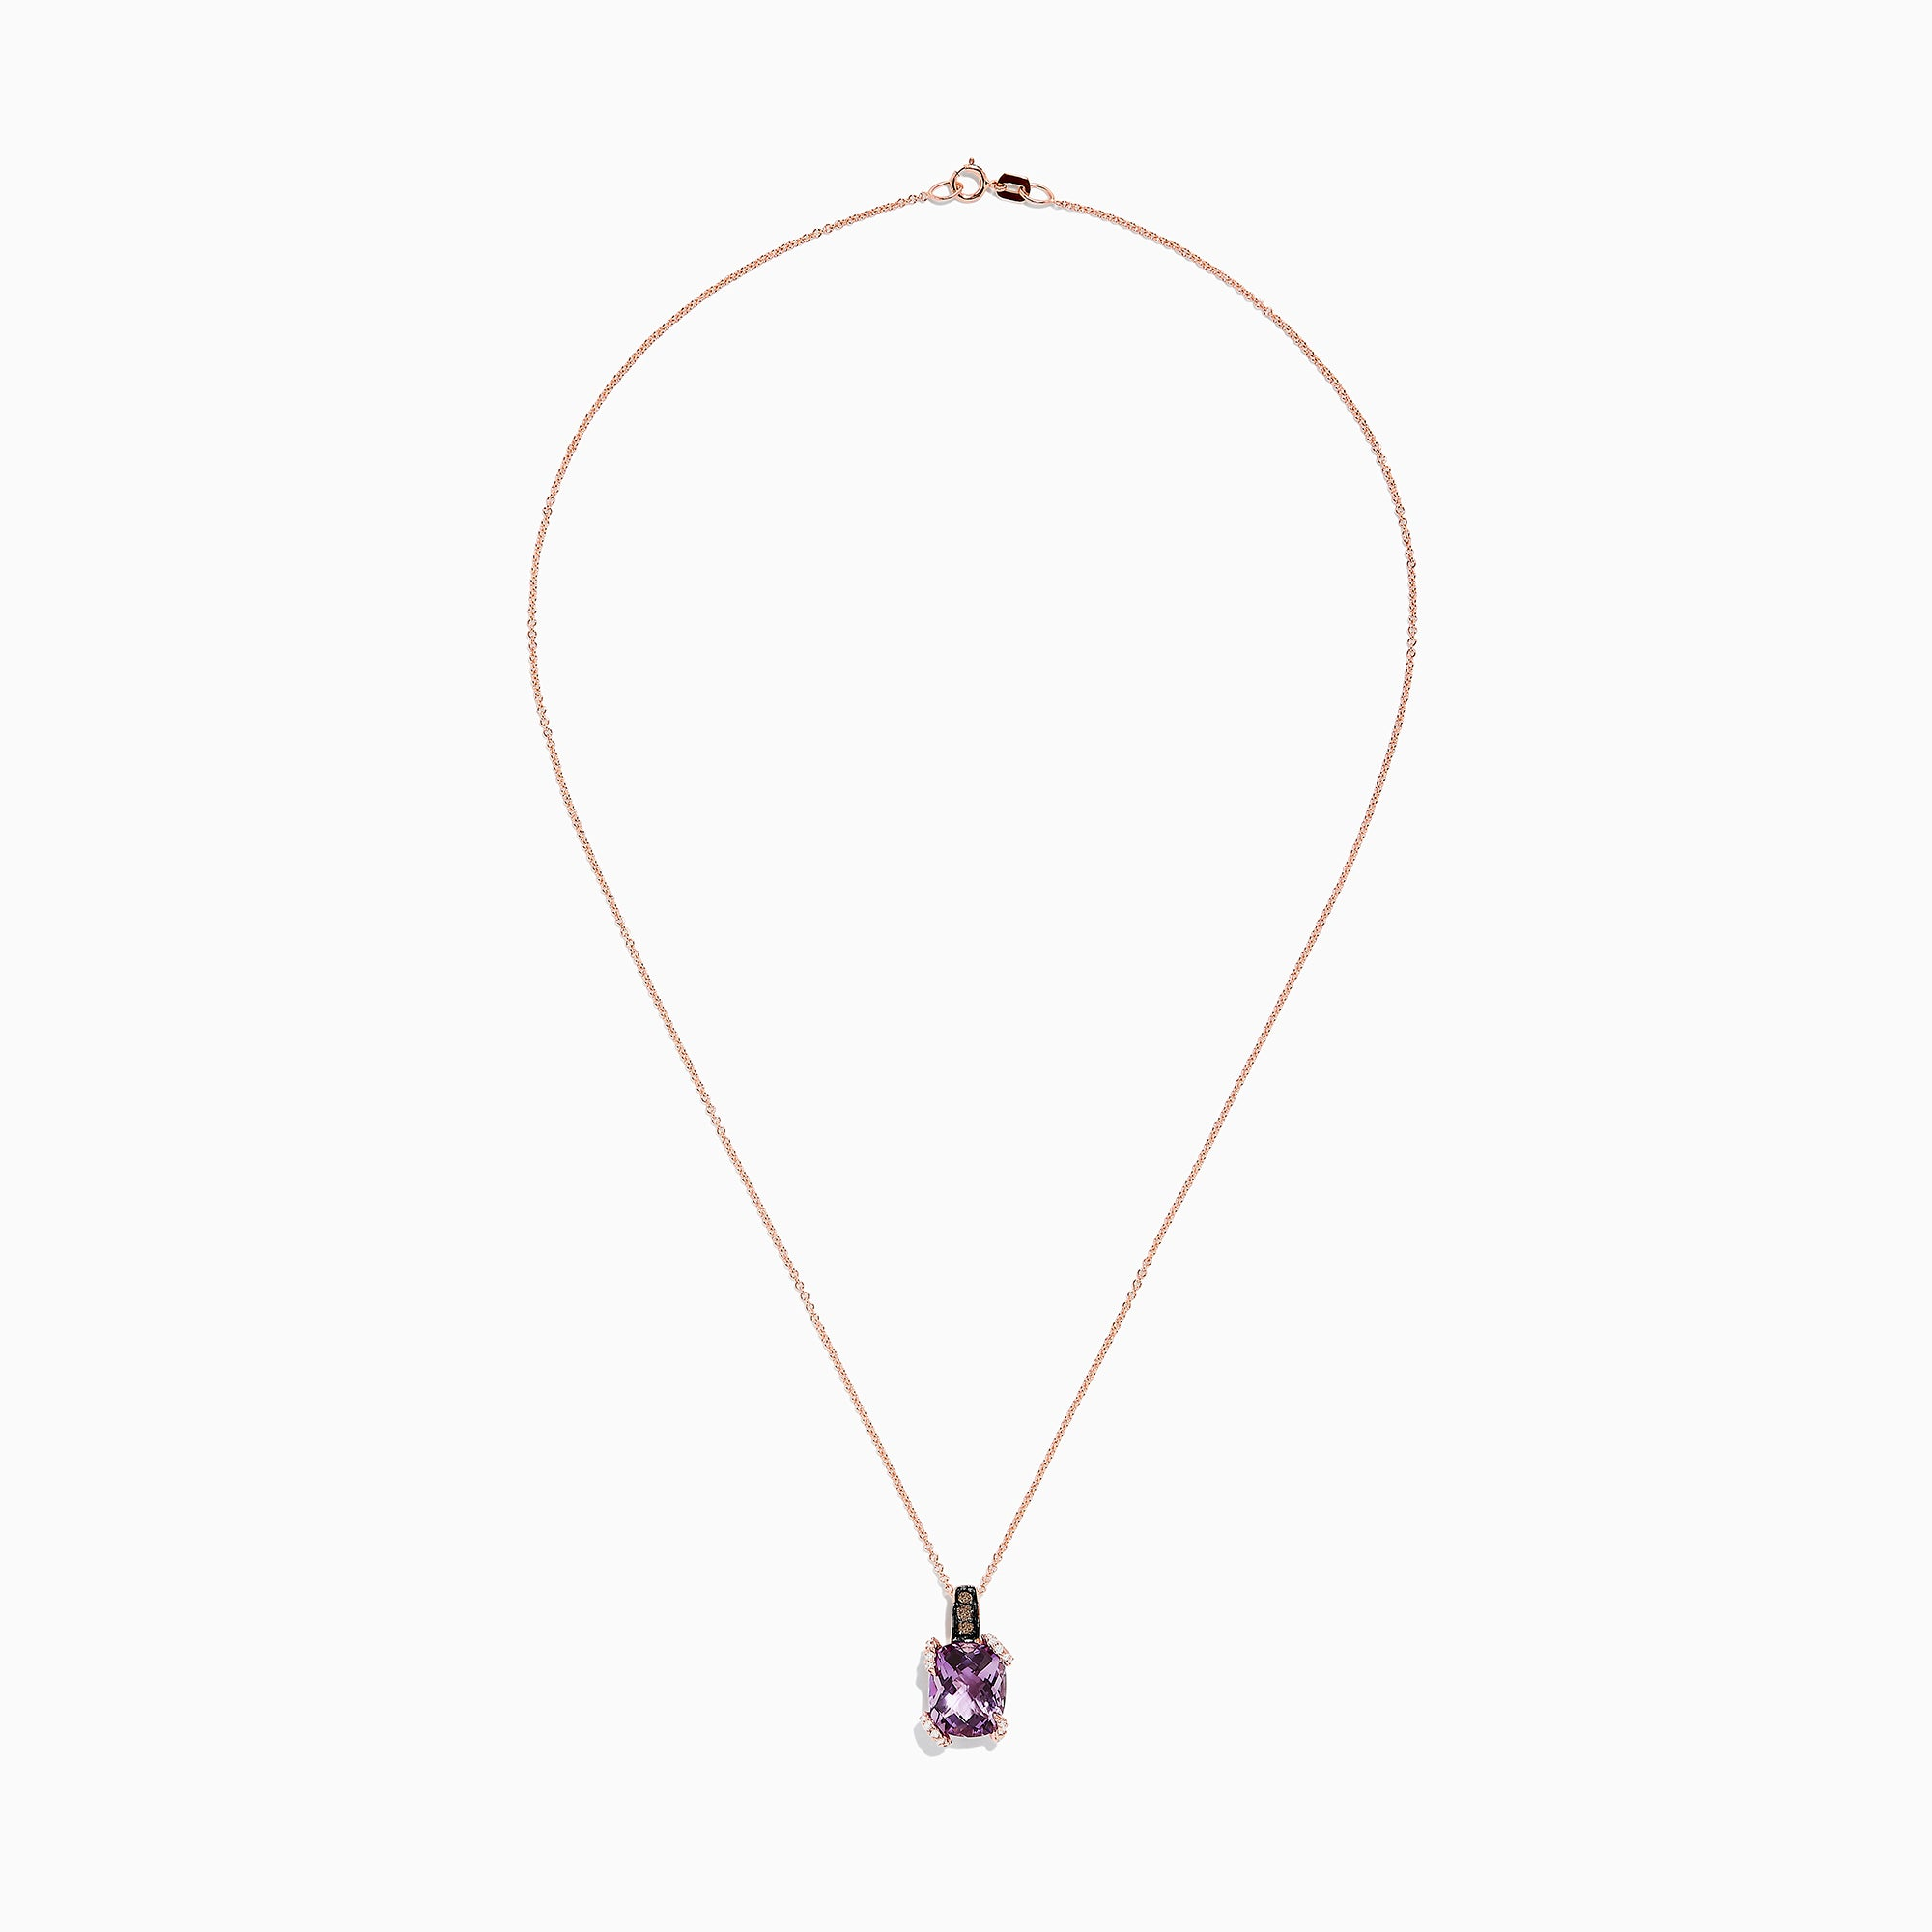 Effy 14K Rose Gold Amethyst and Diamond Pendant, 3.92 TCW